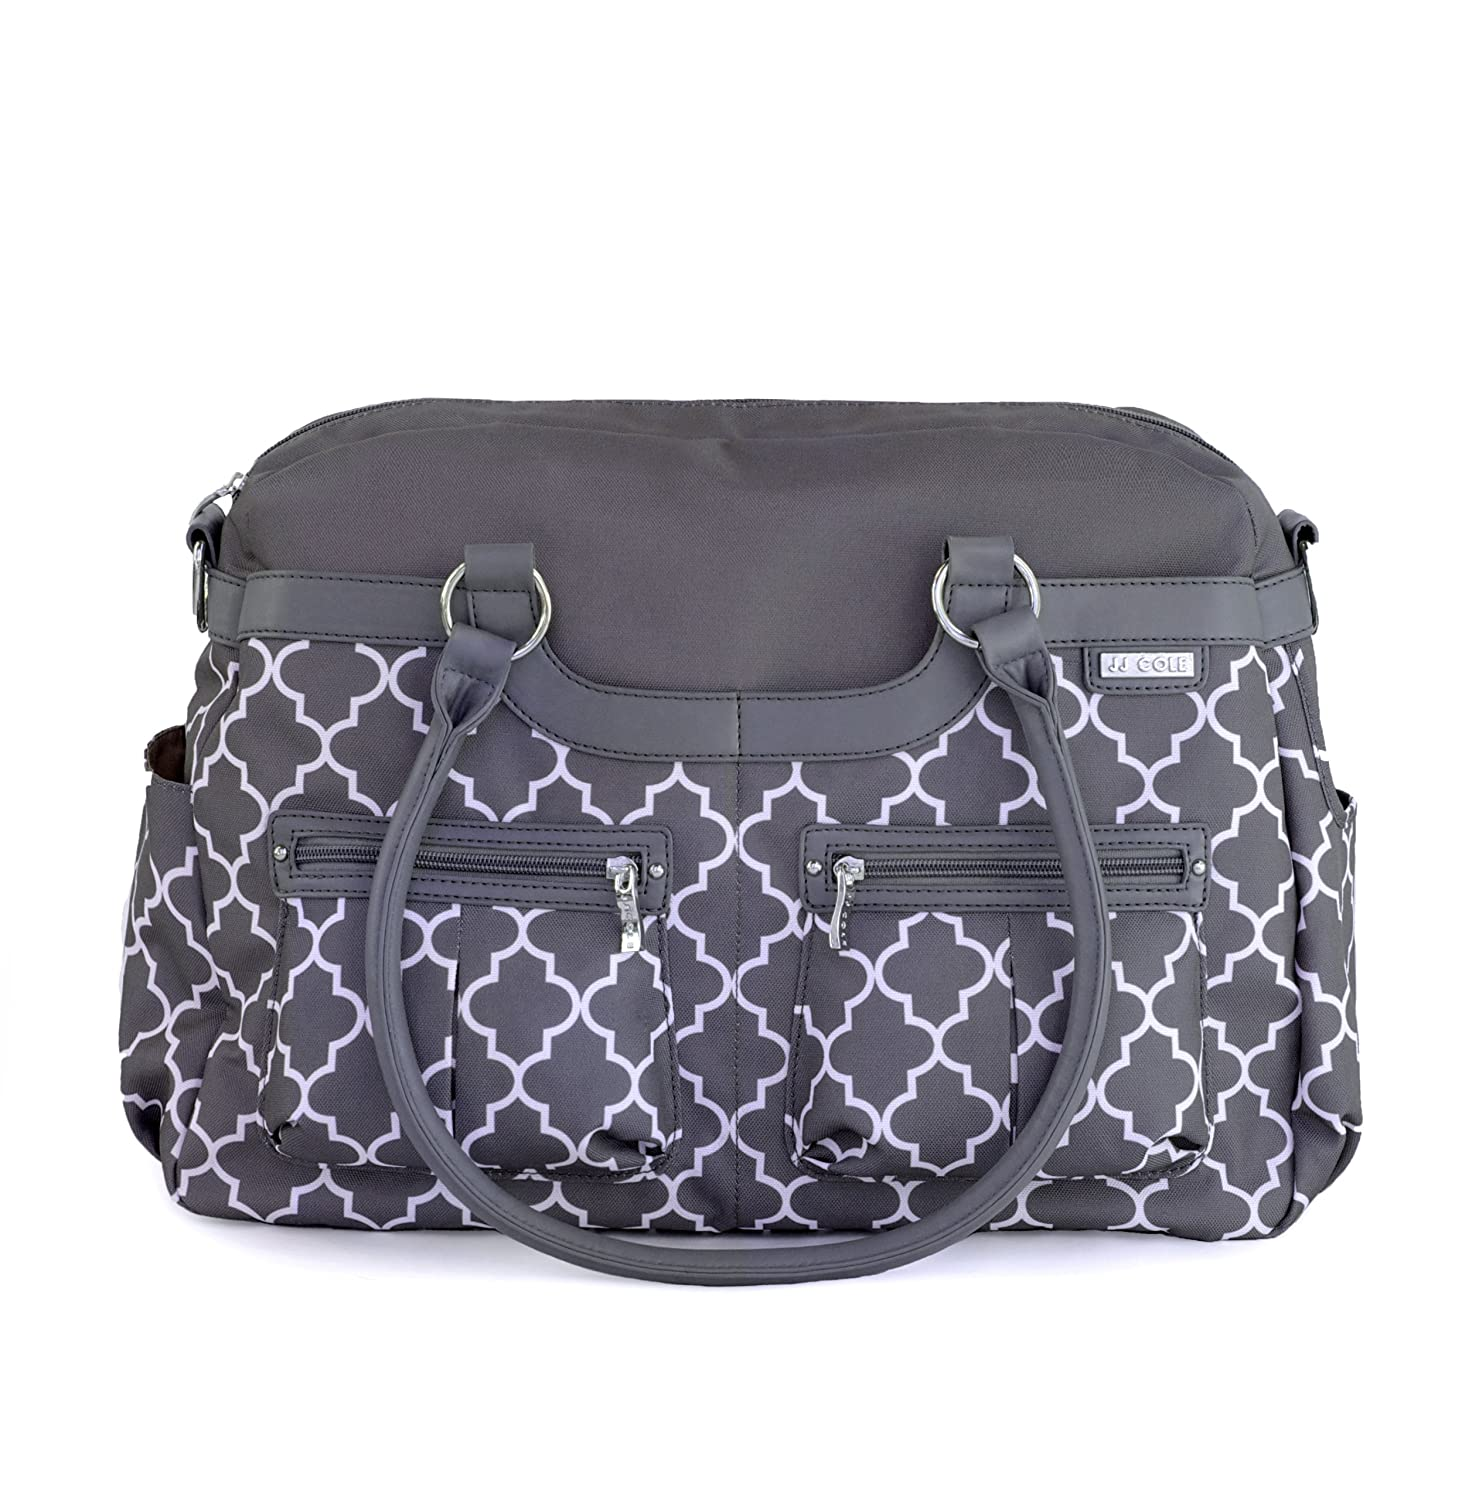 Top 9 Best Small Diaper Bags Reviews in 2021 12